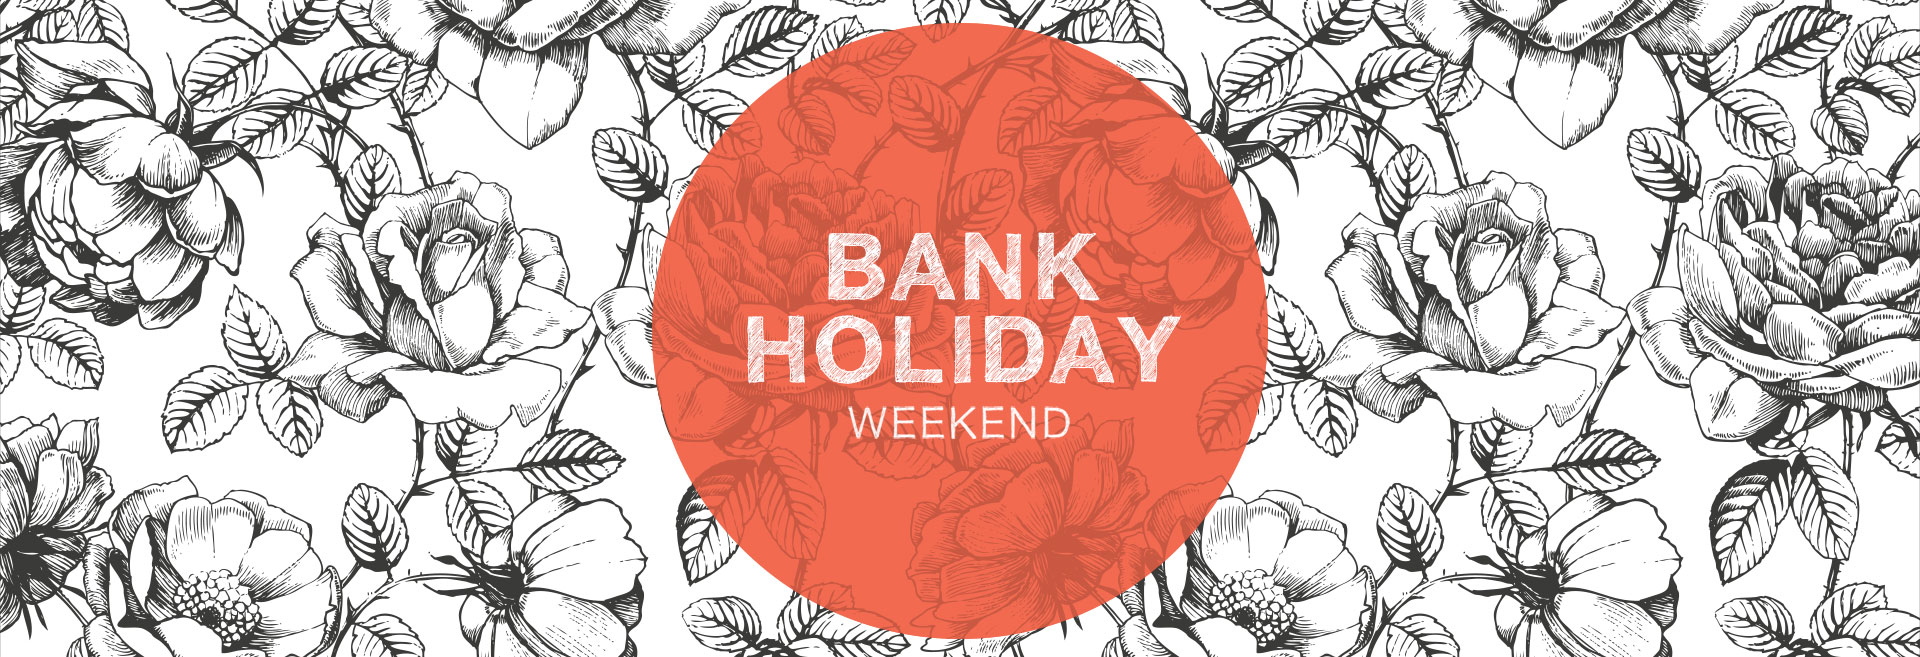 May Bank Holiday at Hector's